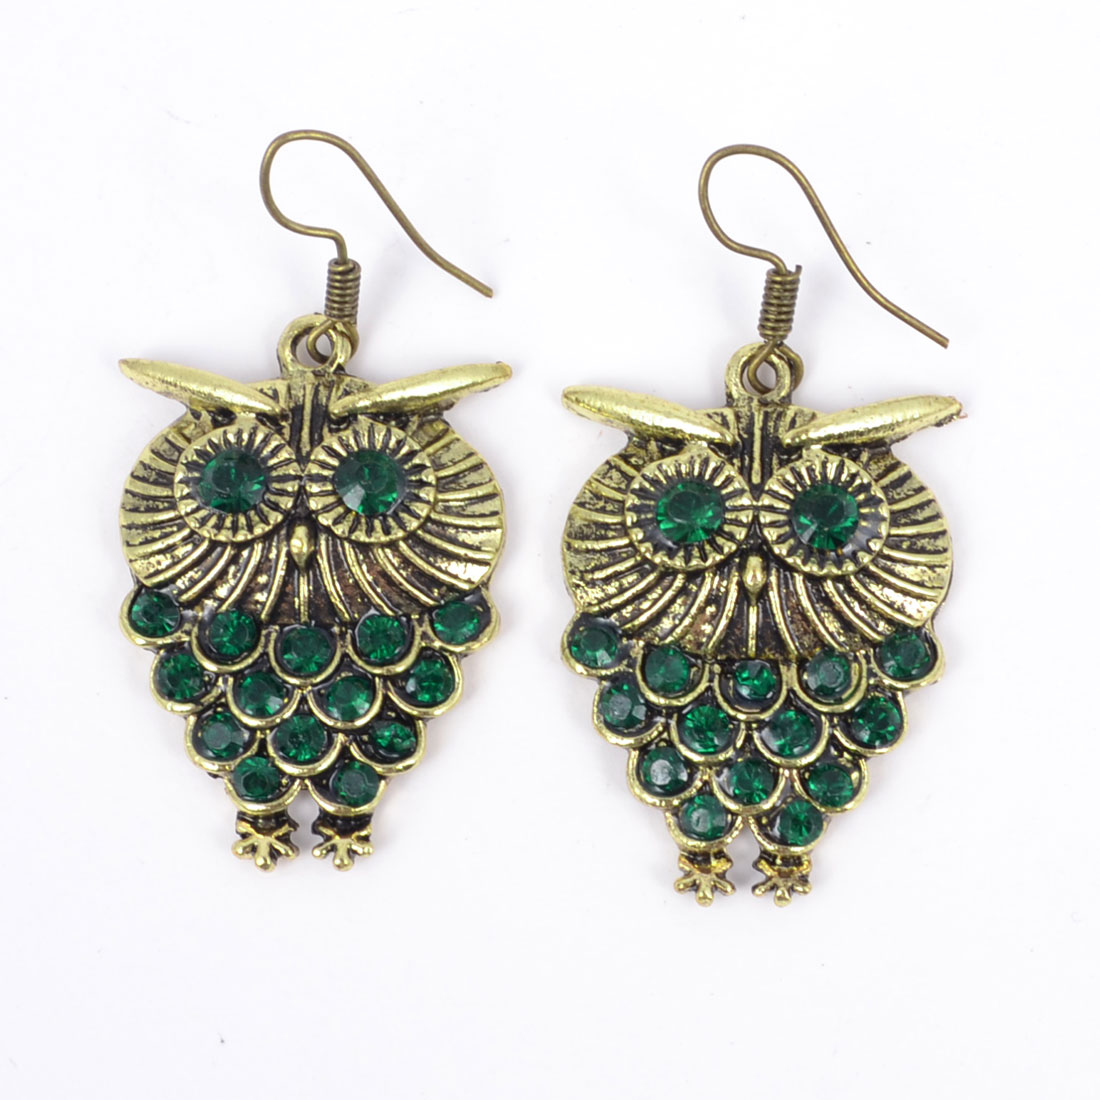 Pair Green Rhinestone Inlaid Metal Owl Fish Hook Earrings Eardrop for Lady